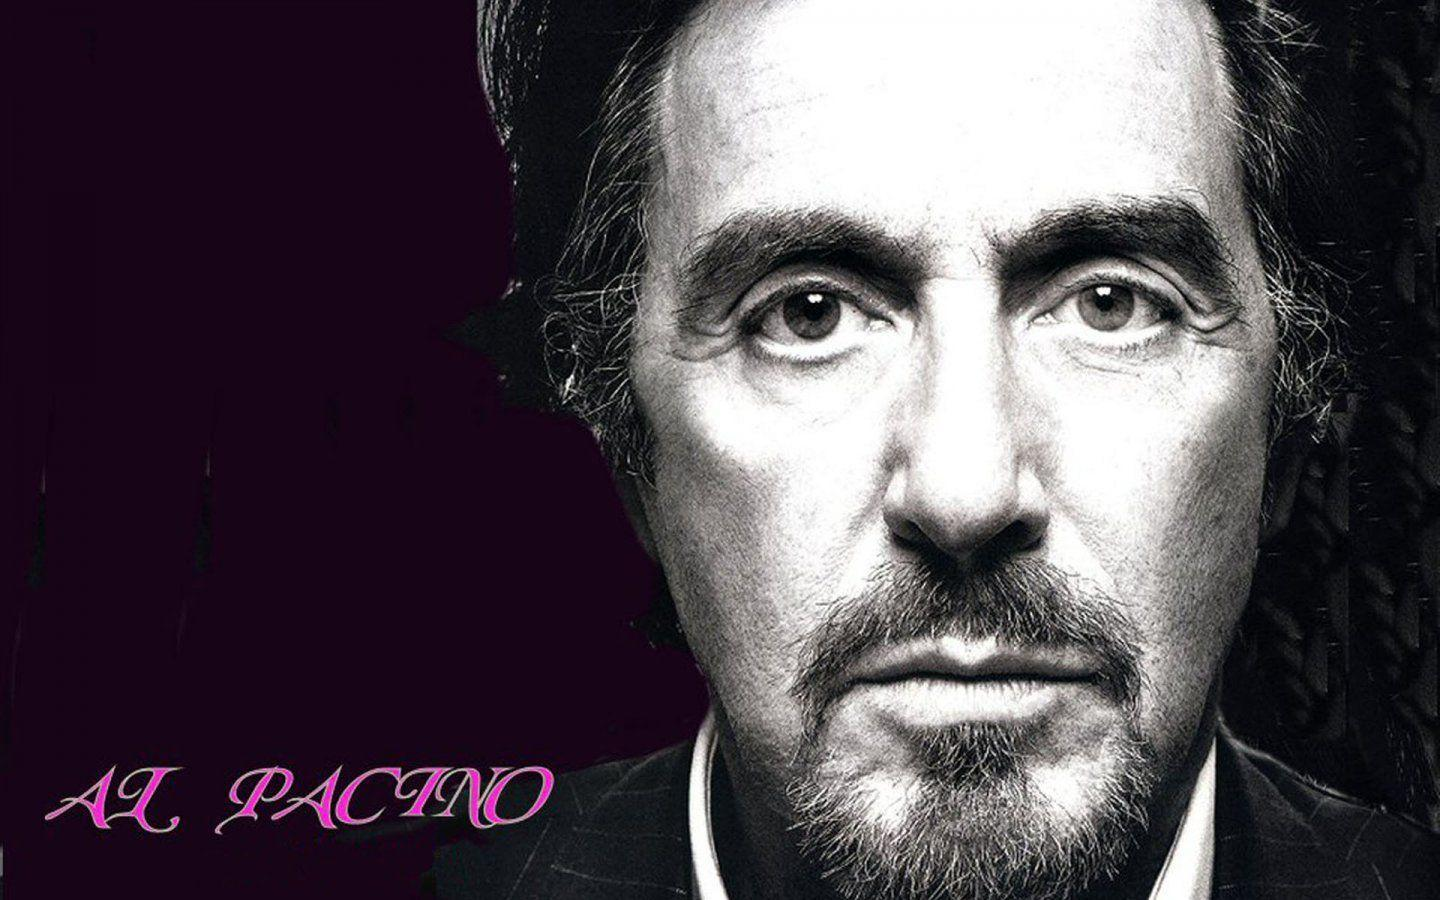 HD Wallpapers Al Pacino high quality and definition